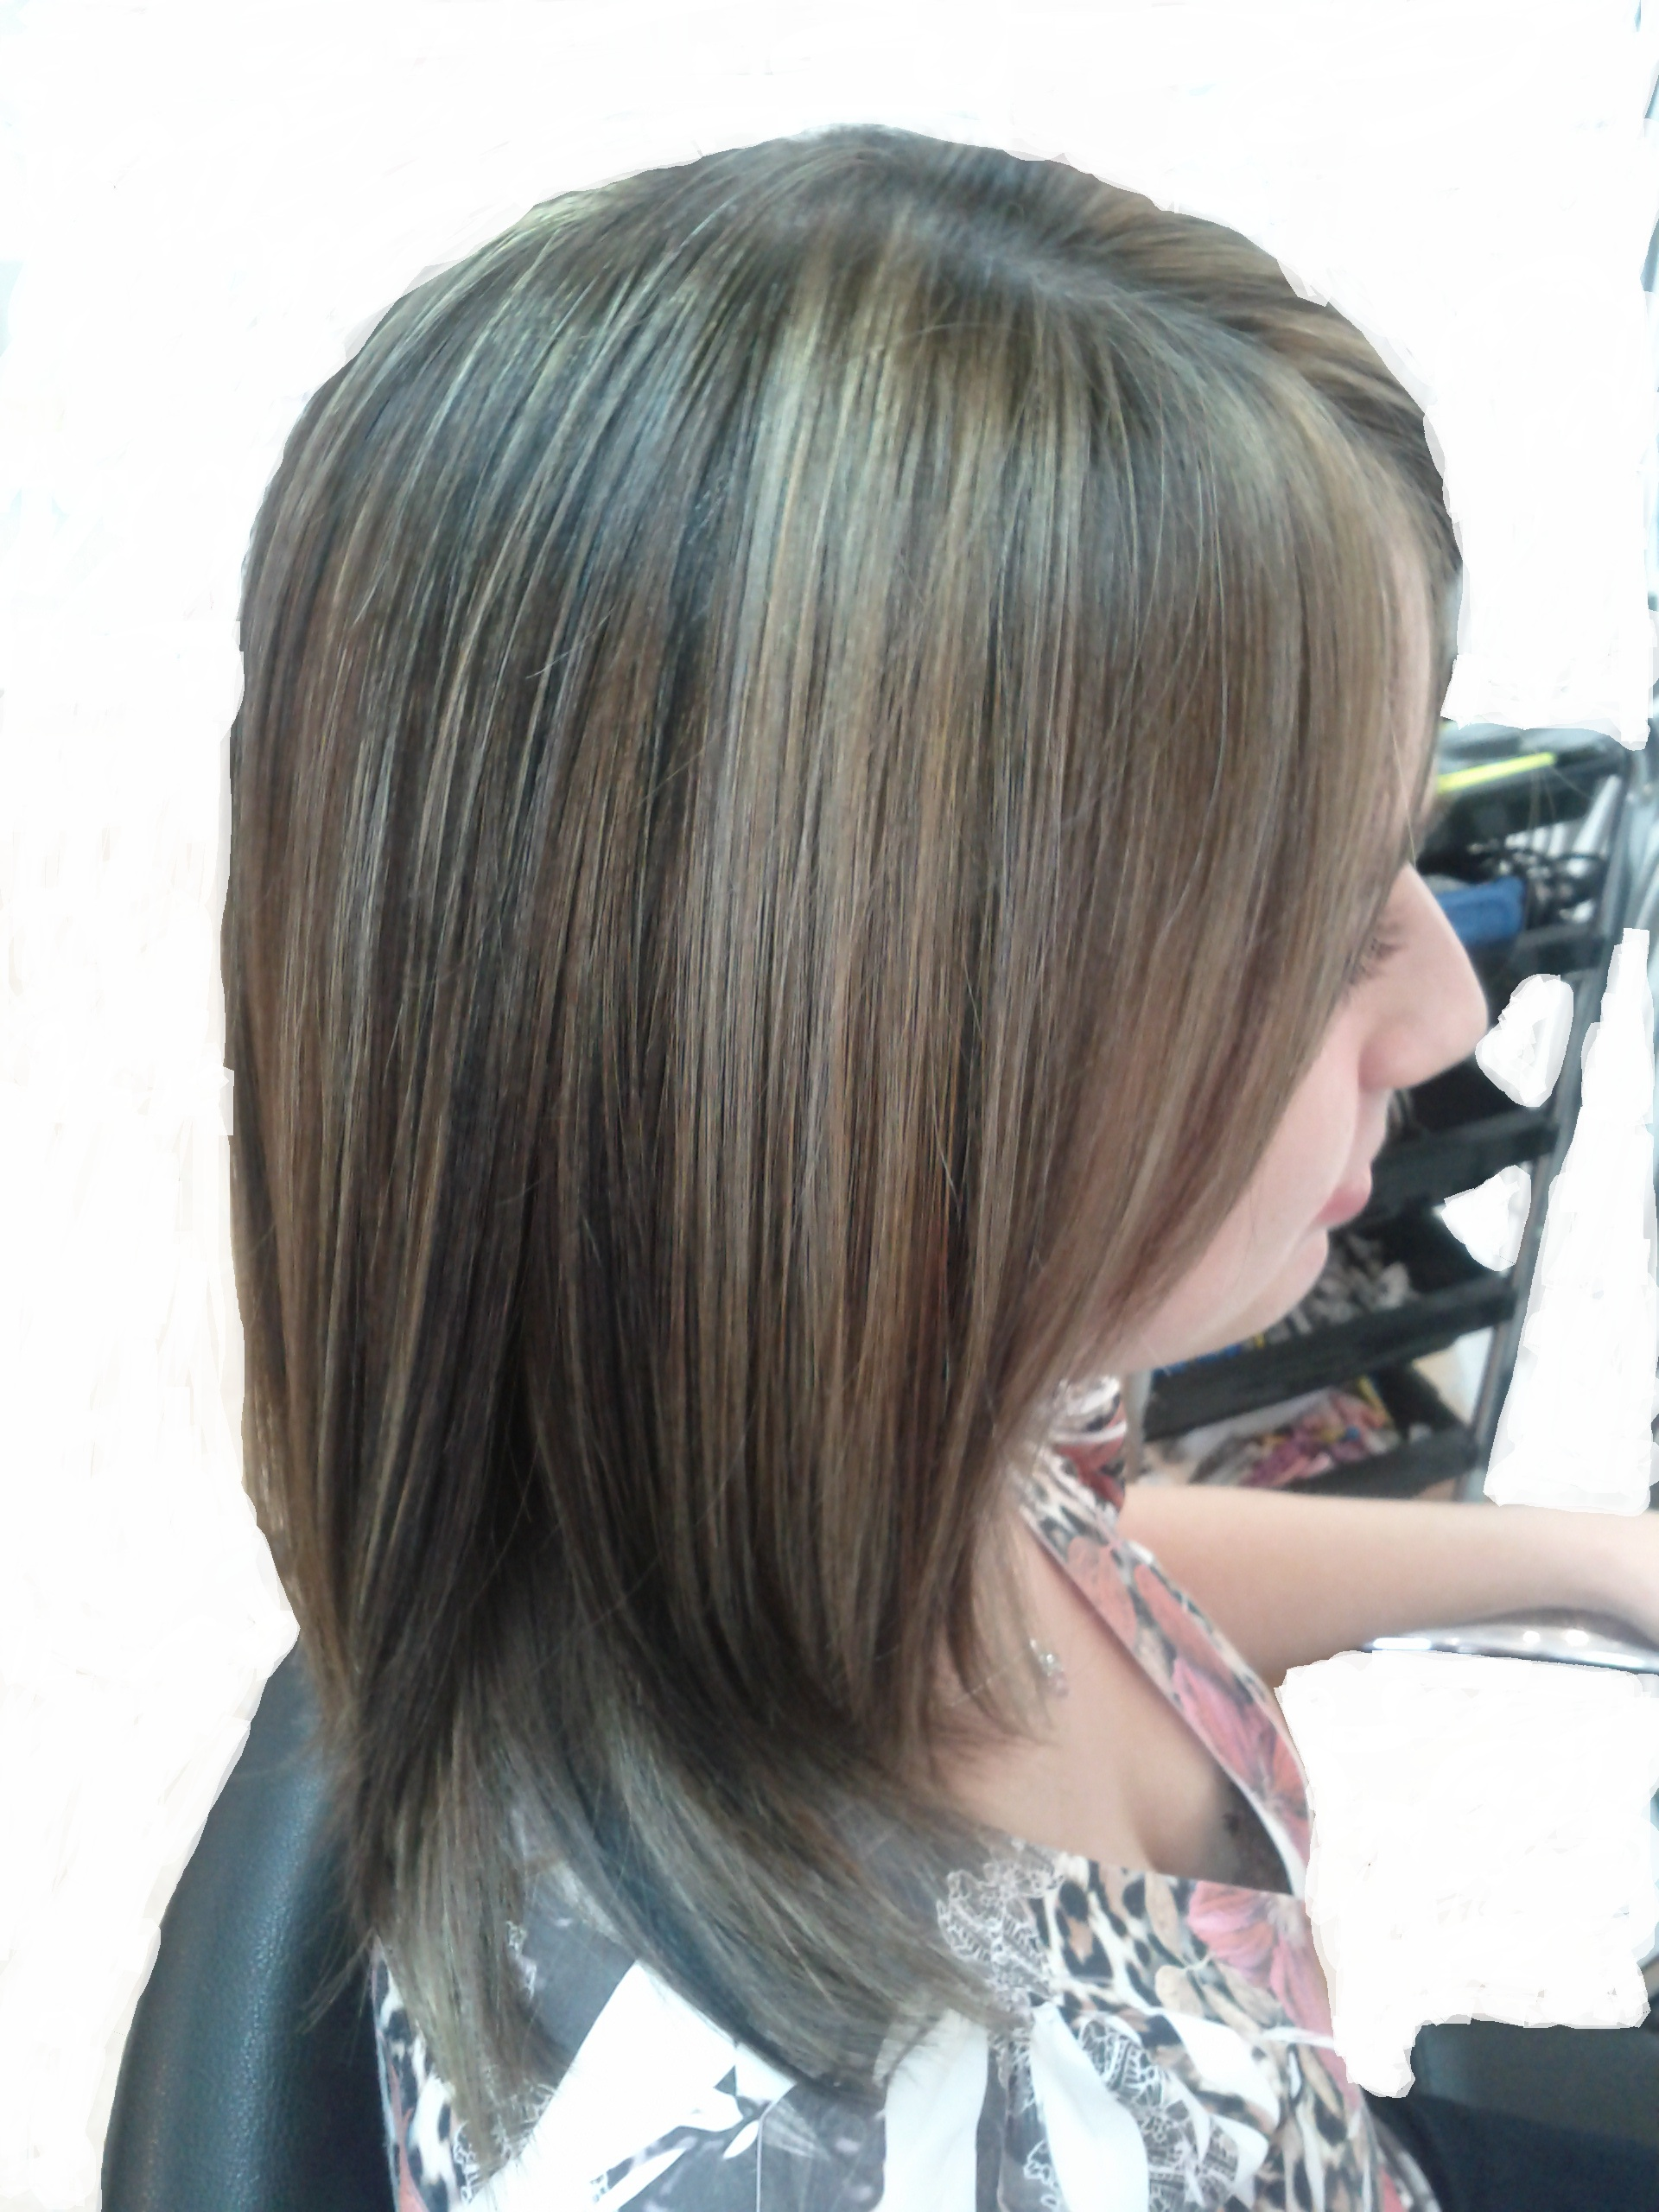 Coiffure blonde meche affordable coiffure meche blonde en ce qui concerne coiffure blonde avec - Coiffure meches blondes et chocolat ...